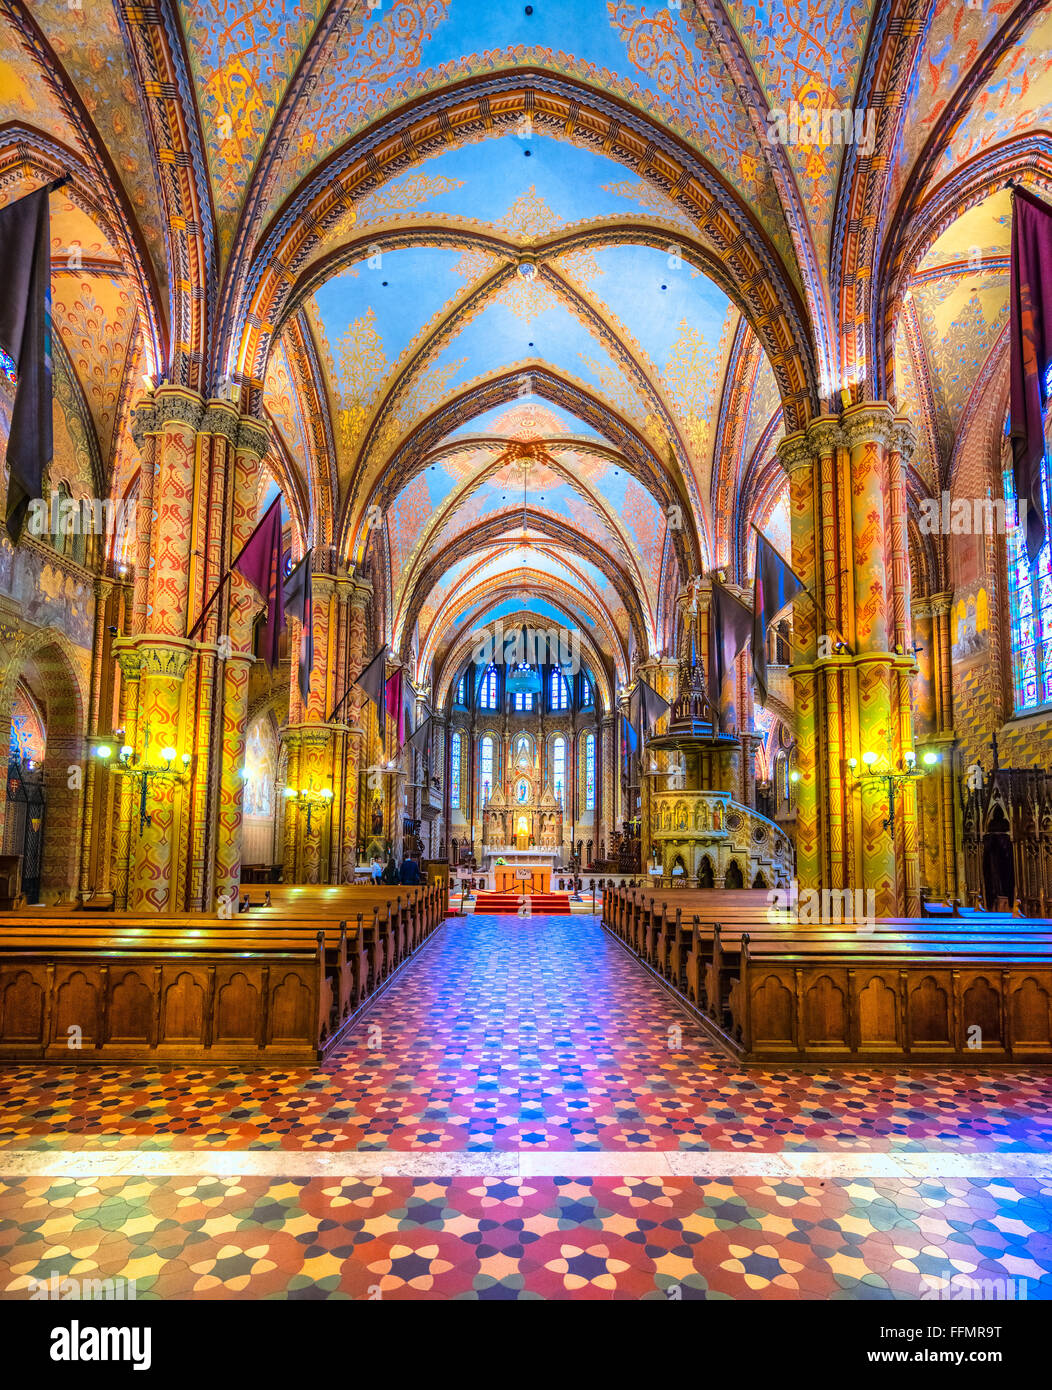 Budapest, Interior view of Mathias Cathedral, Hungary - Stock Image